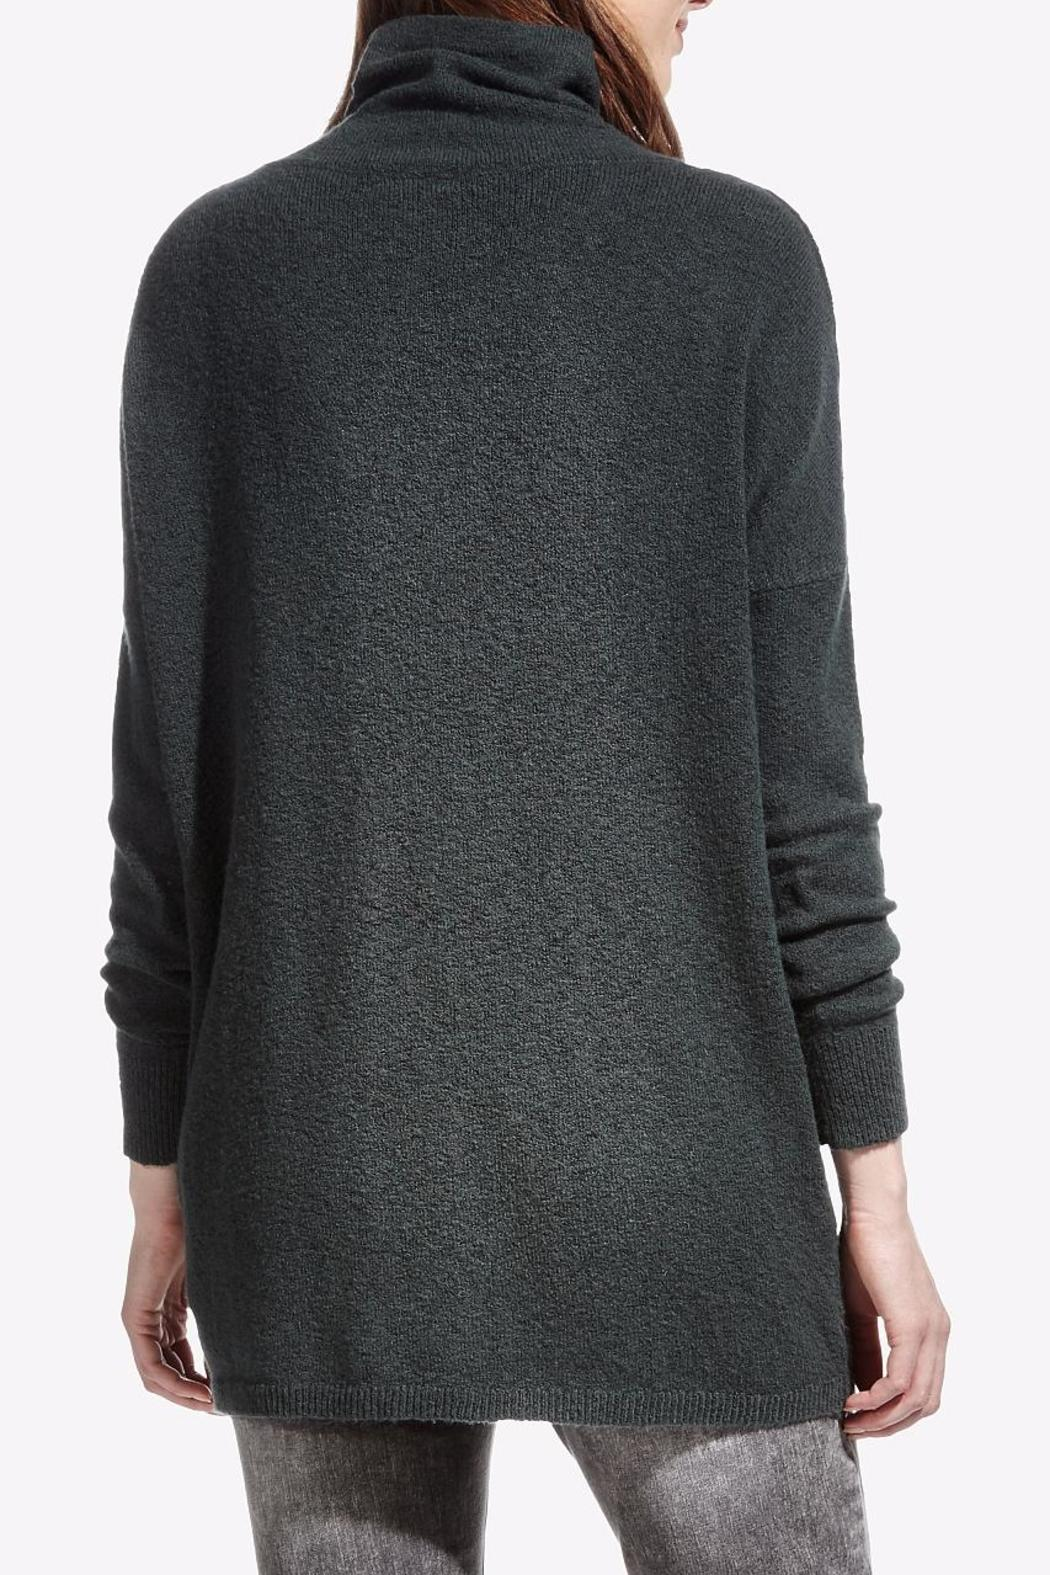 Sandwich Clothing Cozy Tunic Sweater from Canada by Moxxi — Shoptiques